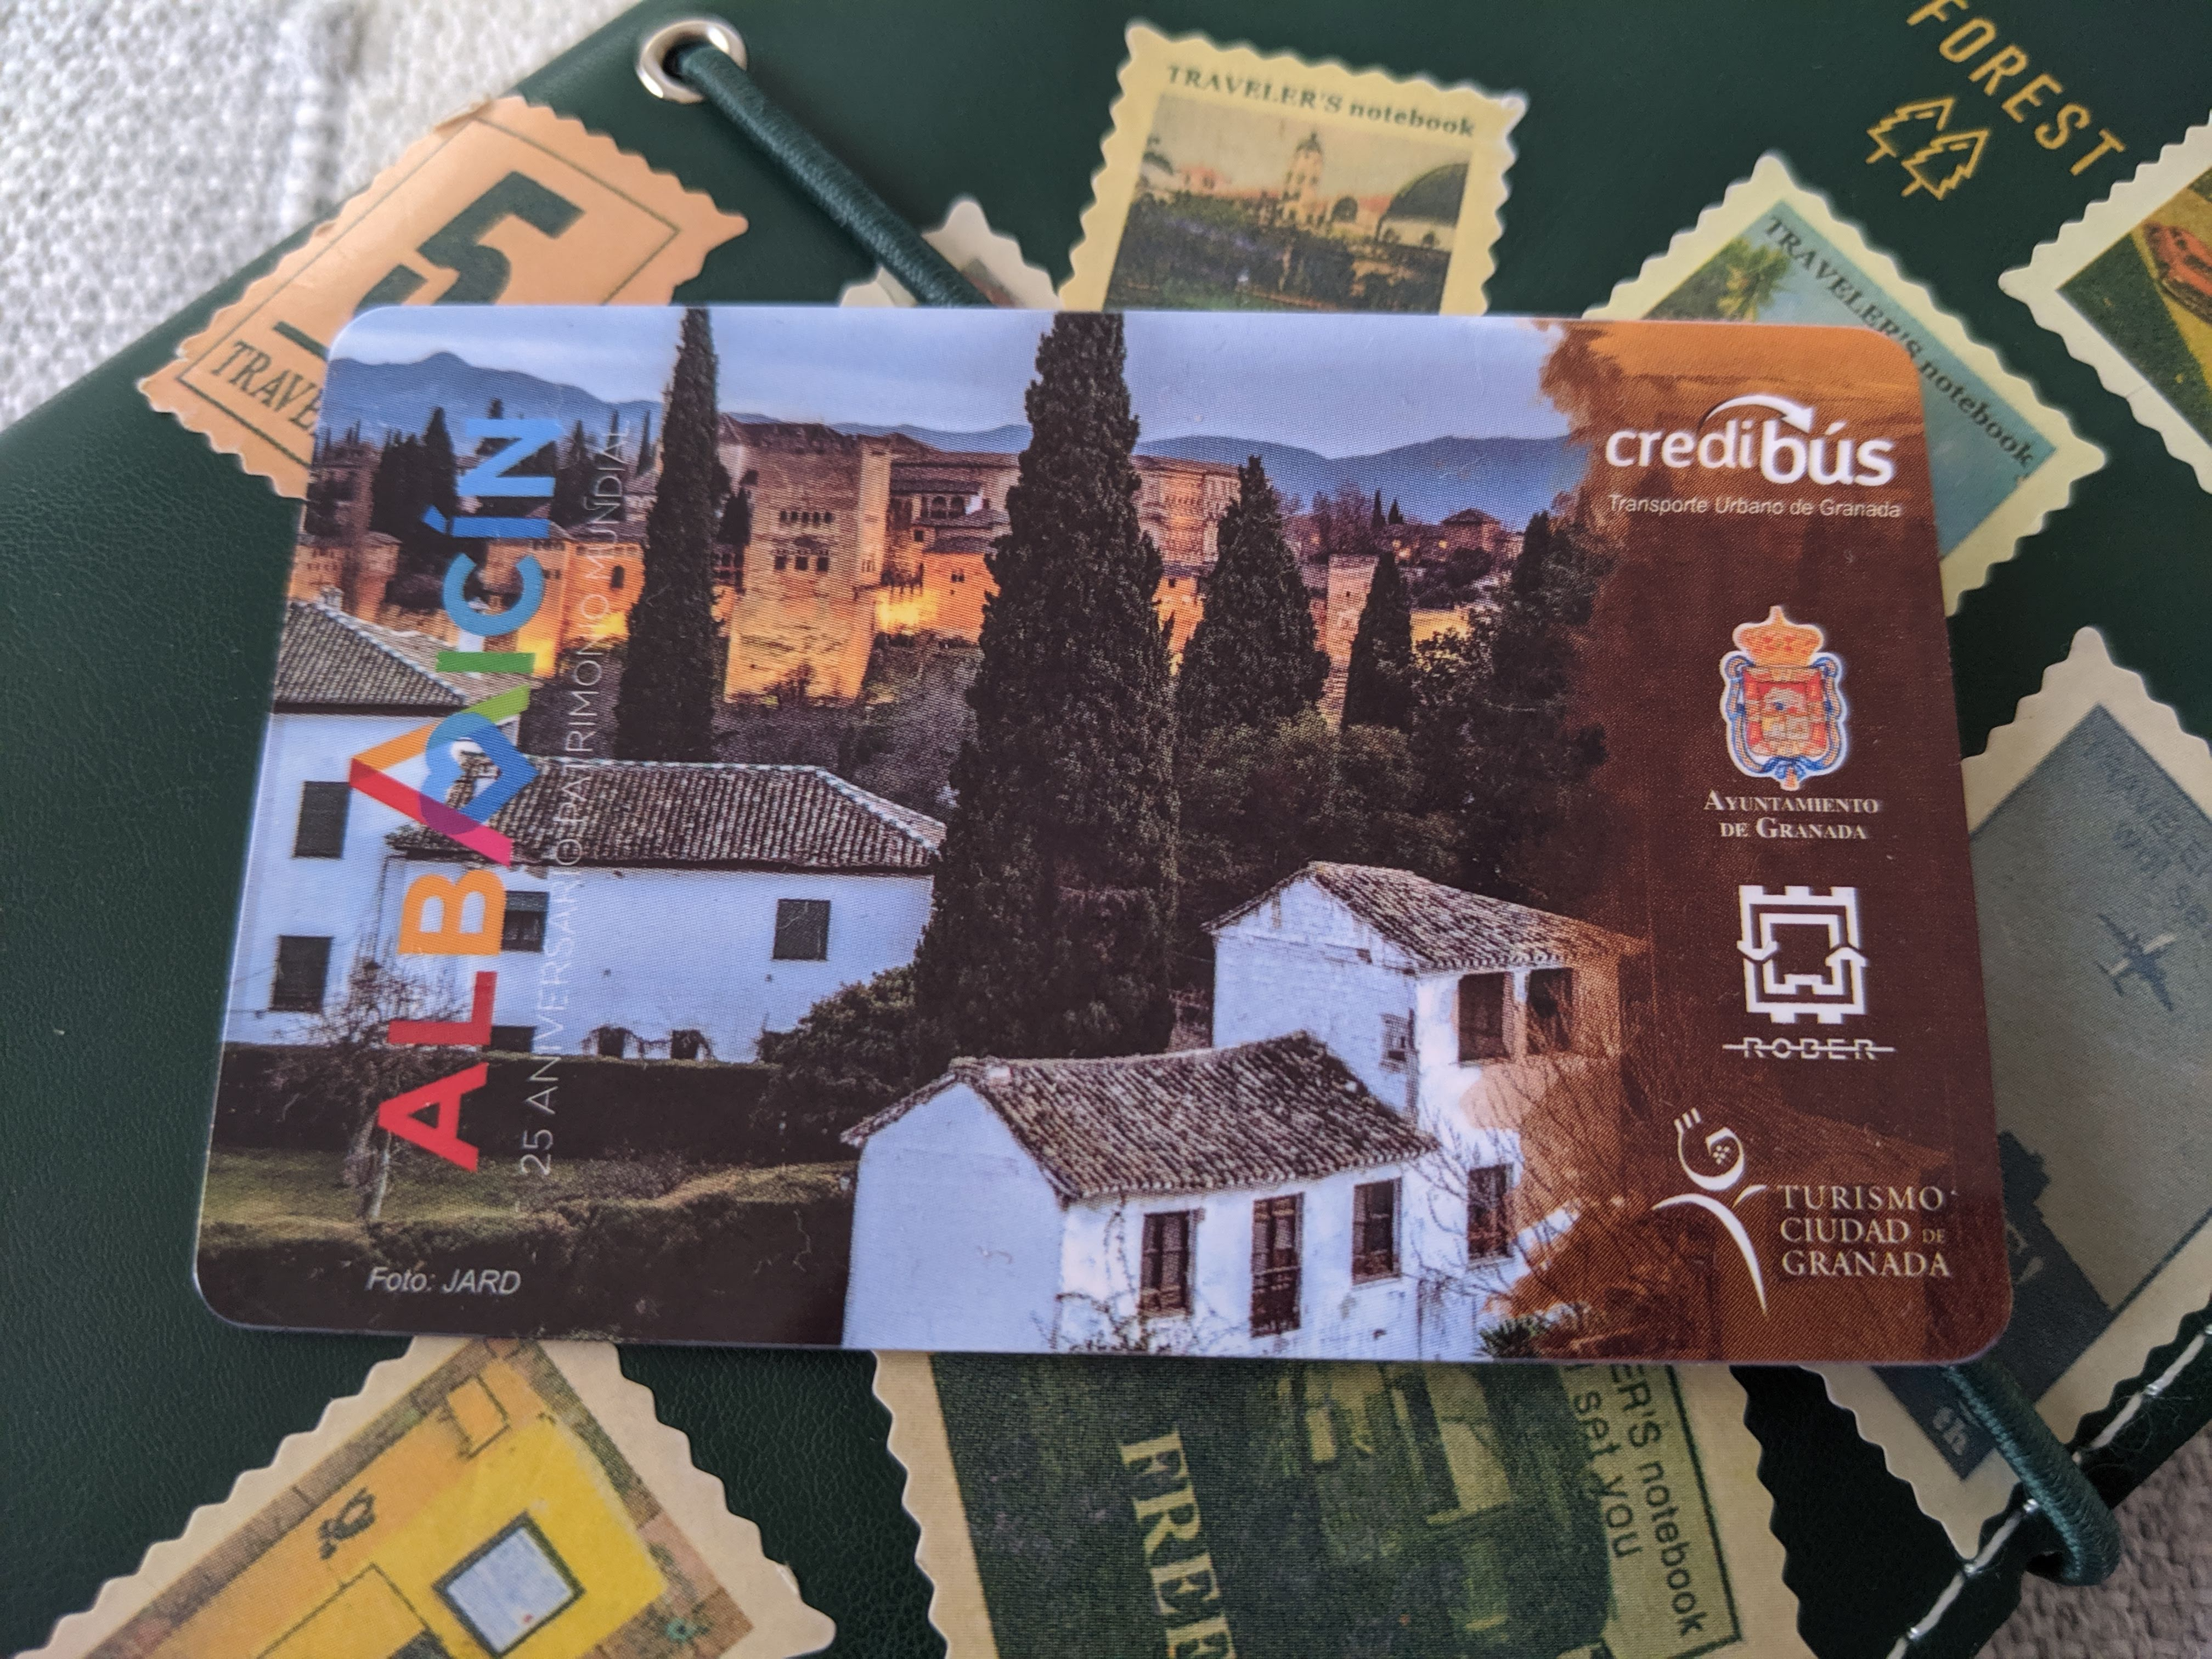 The bus pass you get included in granada card